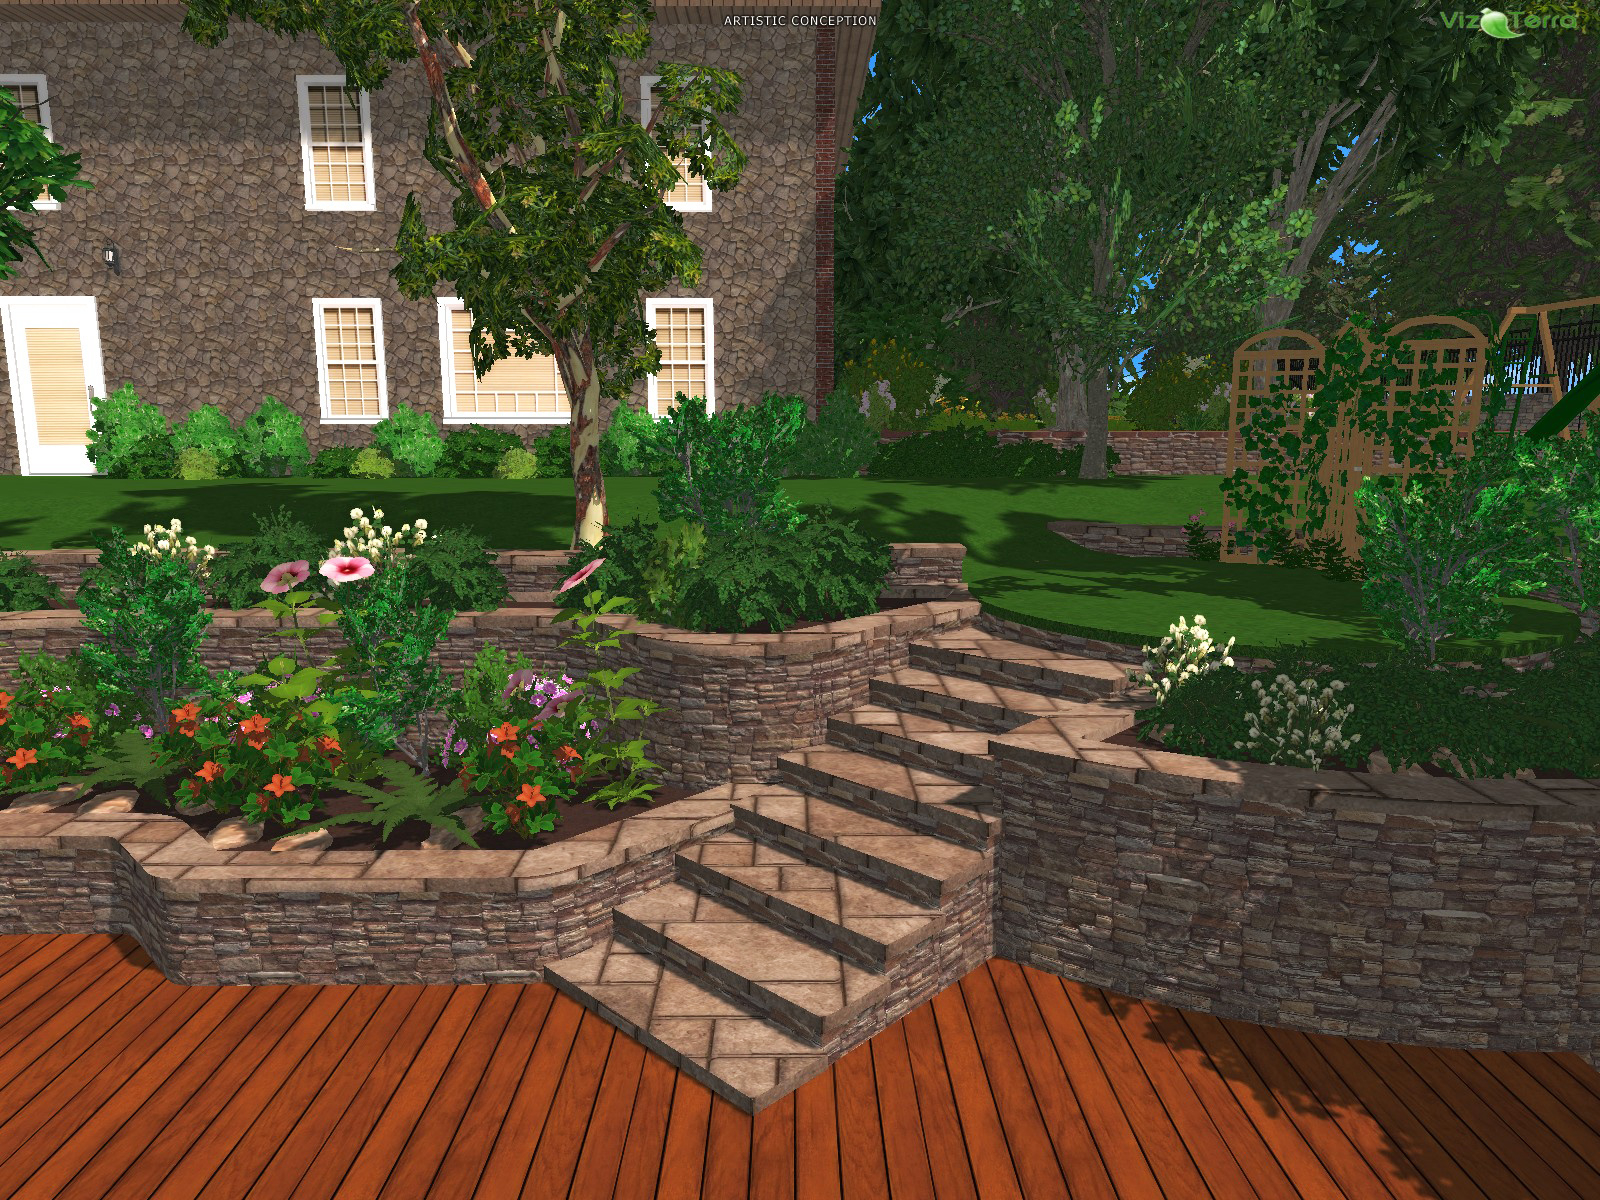 3d Landscape Design Software Landscape Ideas inside 13 Clever Ways How to Make Backyard Landscaping Software